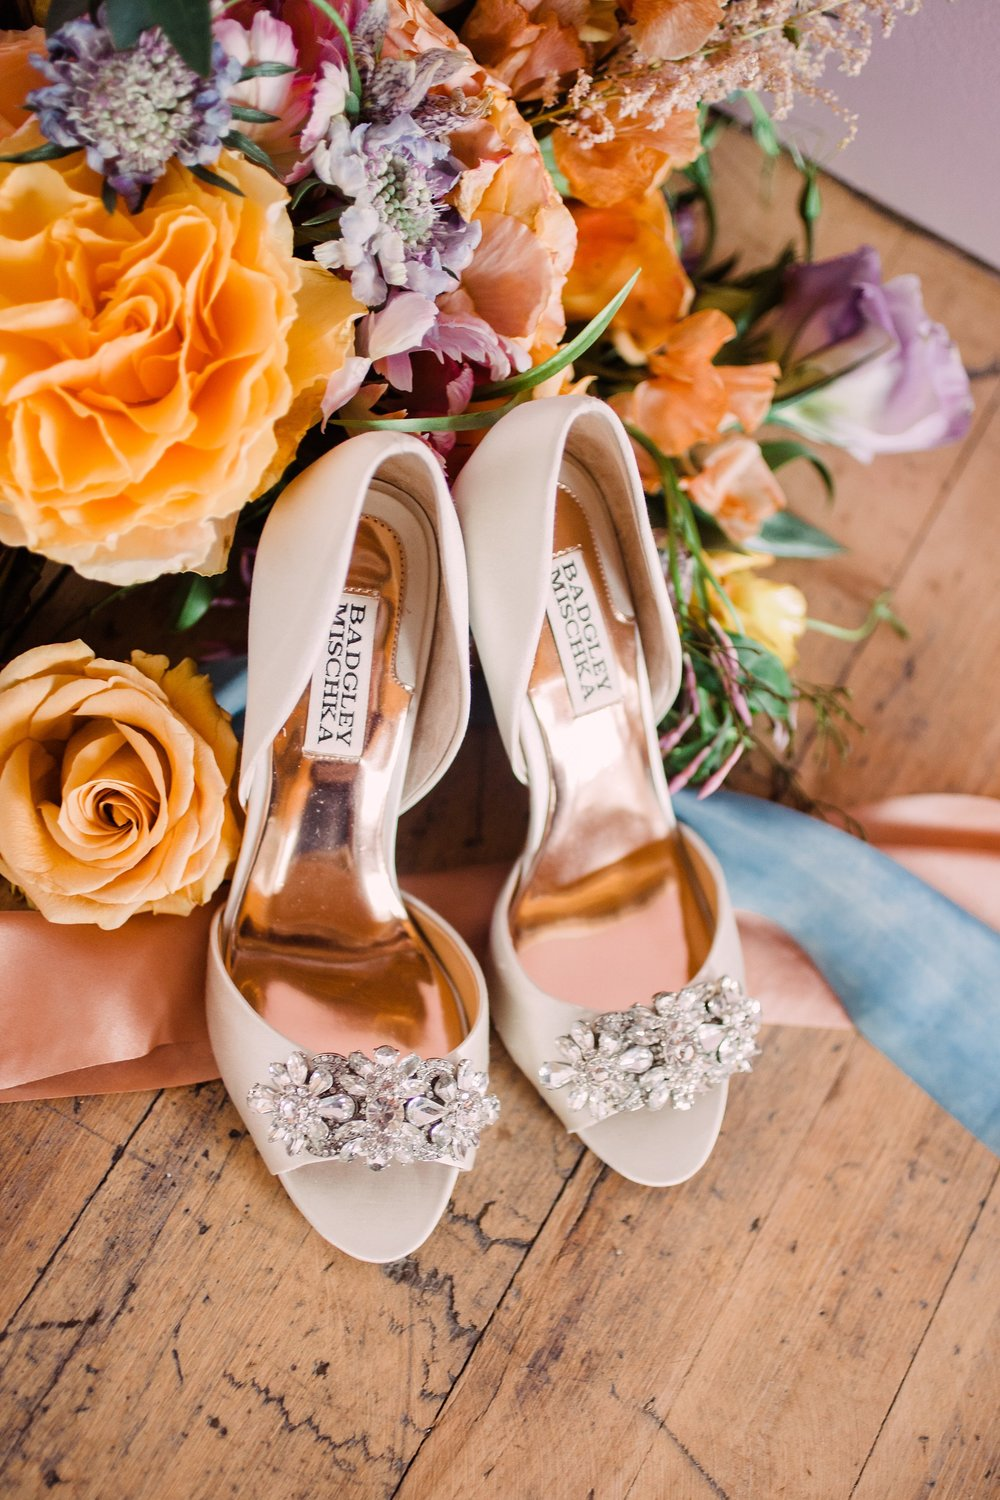 Wedding-Photography_August Wolfe Floral Design Styled Shoot-Des Moines-Iowa_bouquet on floor with shoes-iowa+wedding+photographer.jpeg